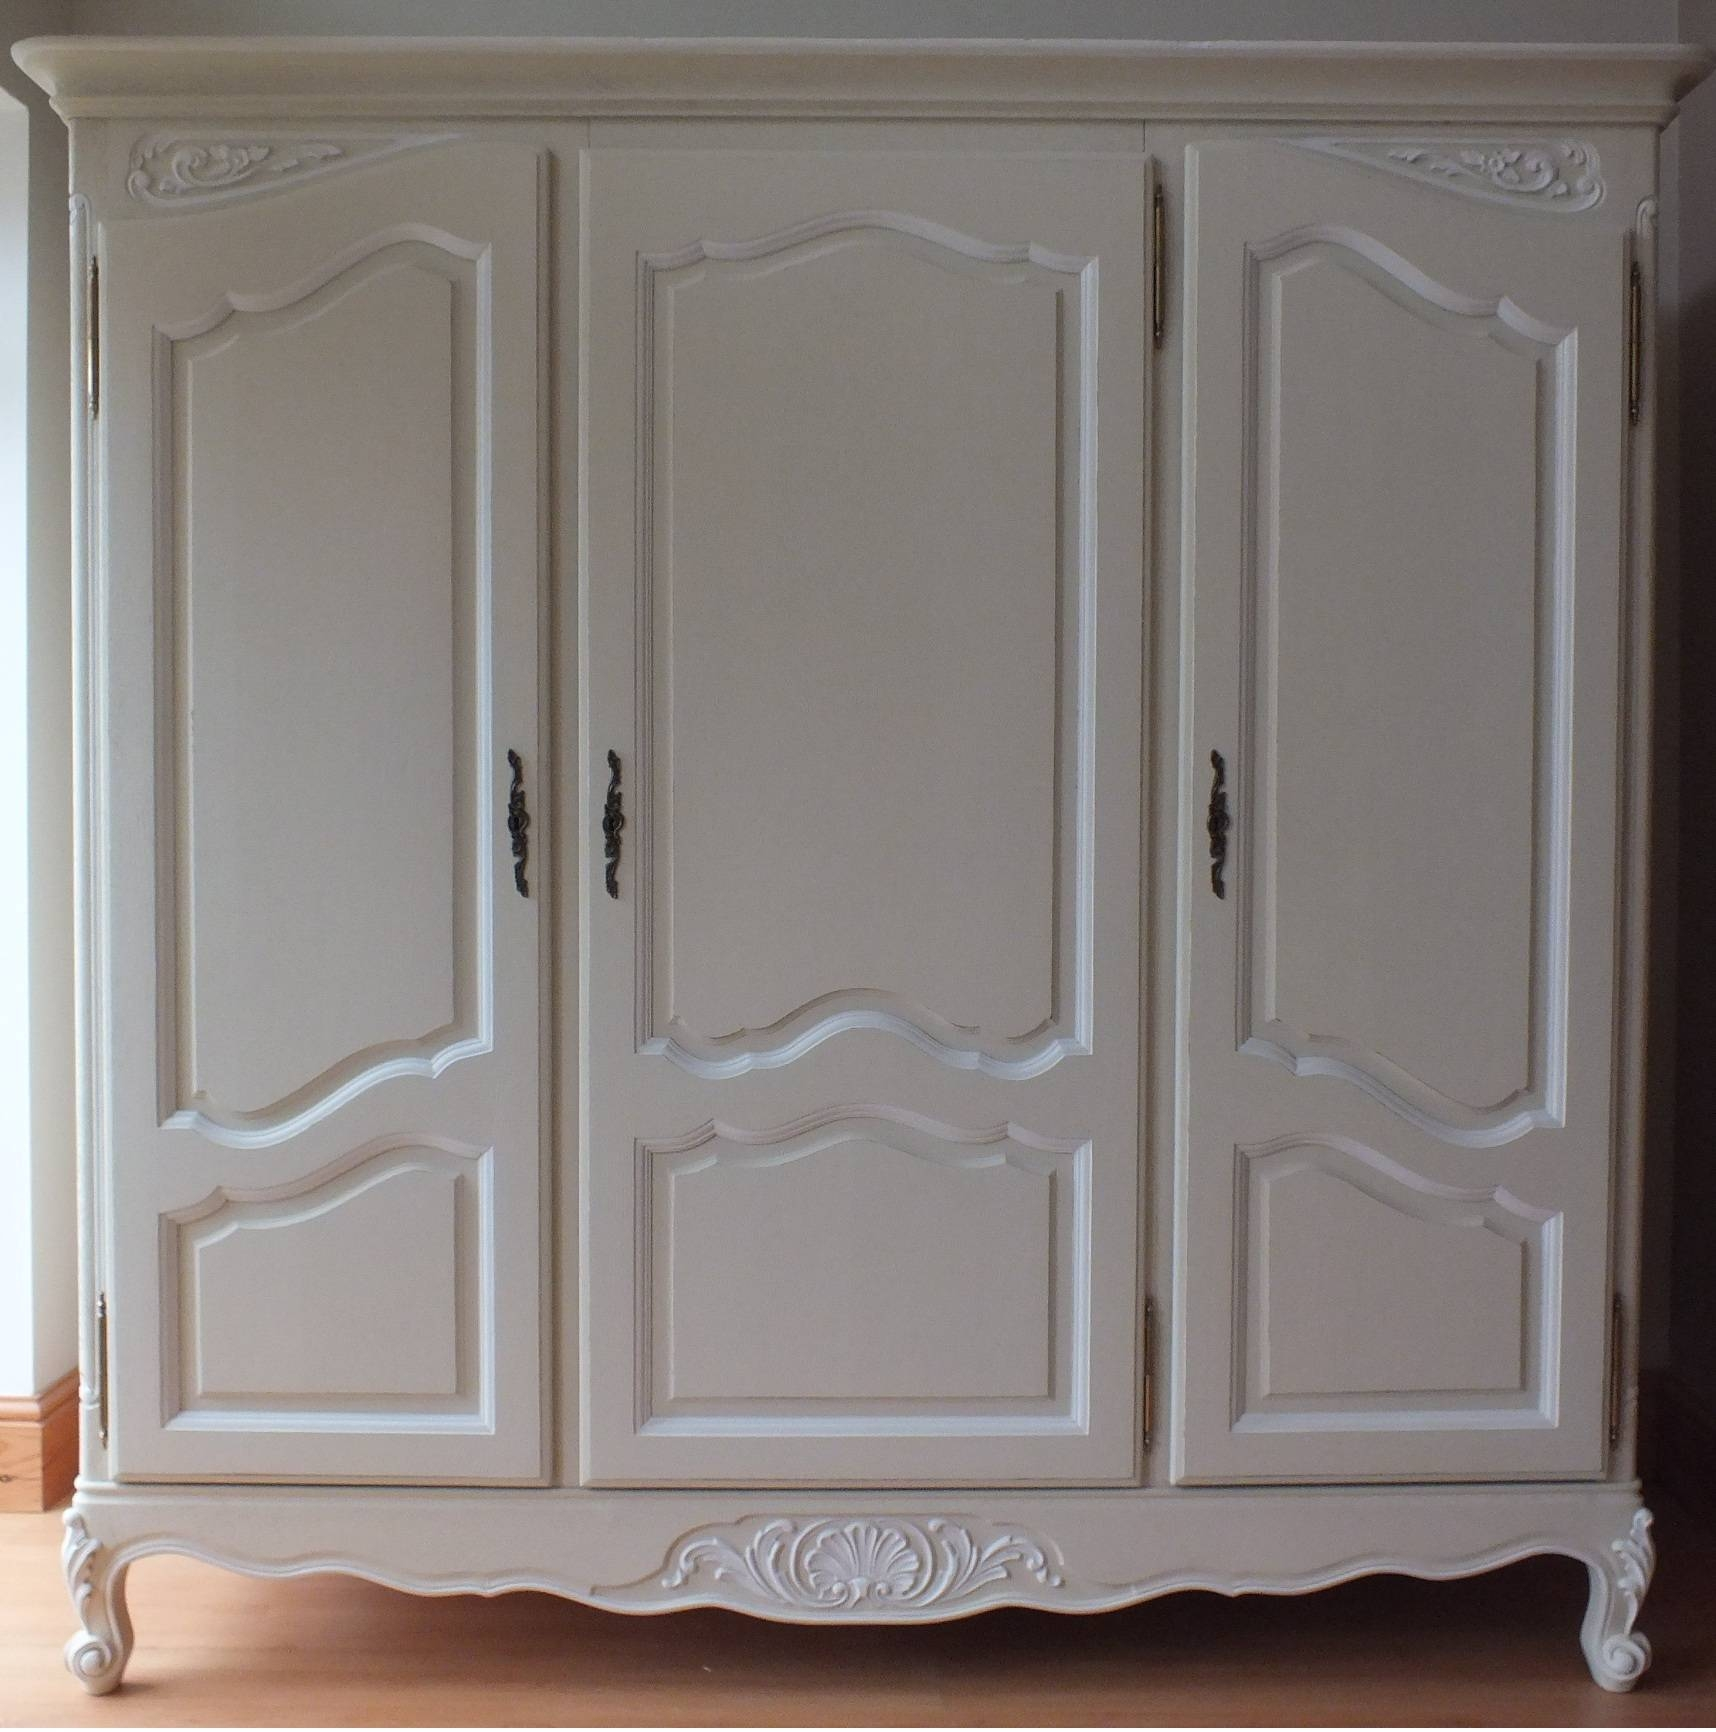 2018 Best Of 3 Door French Wardrobes